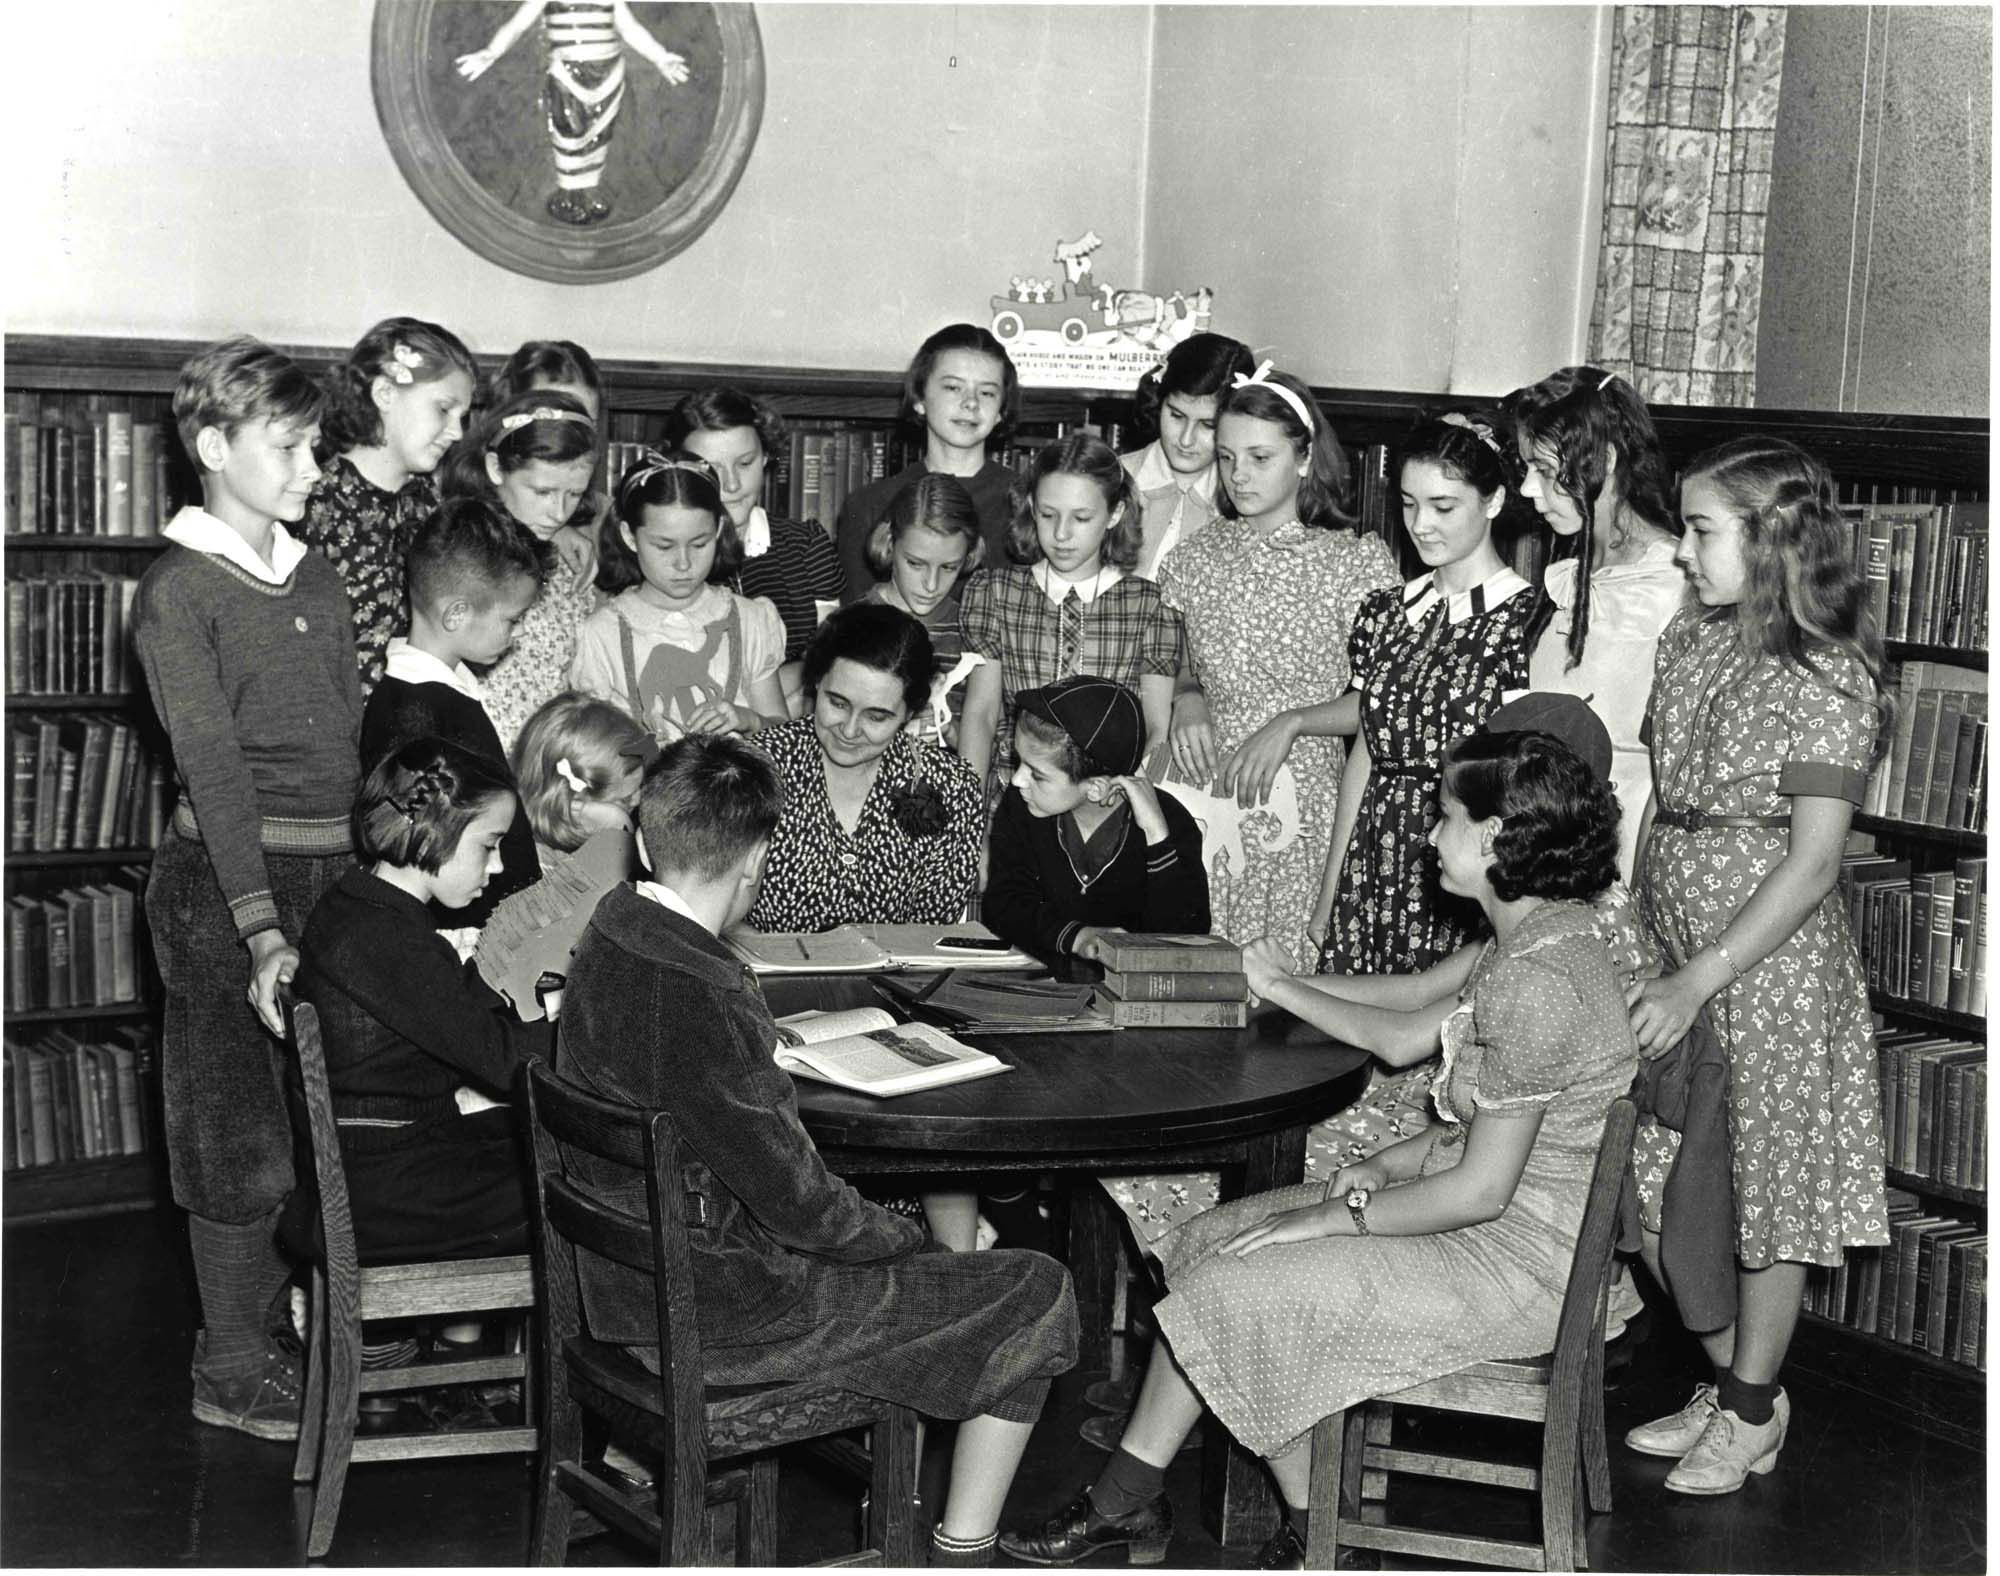 Storytime at the Carnegie Library, 1938 image